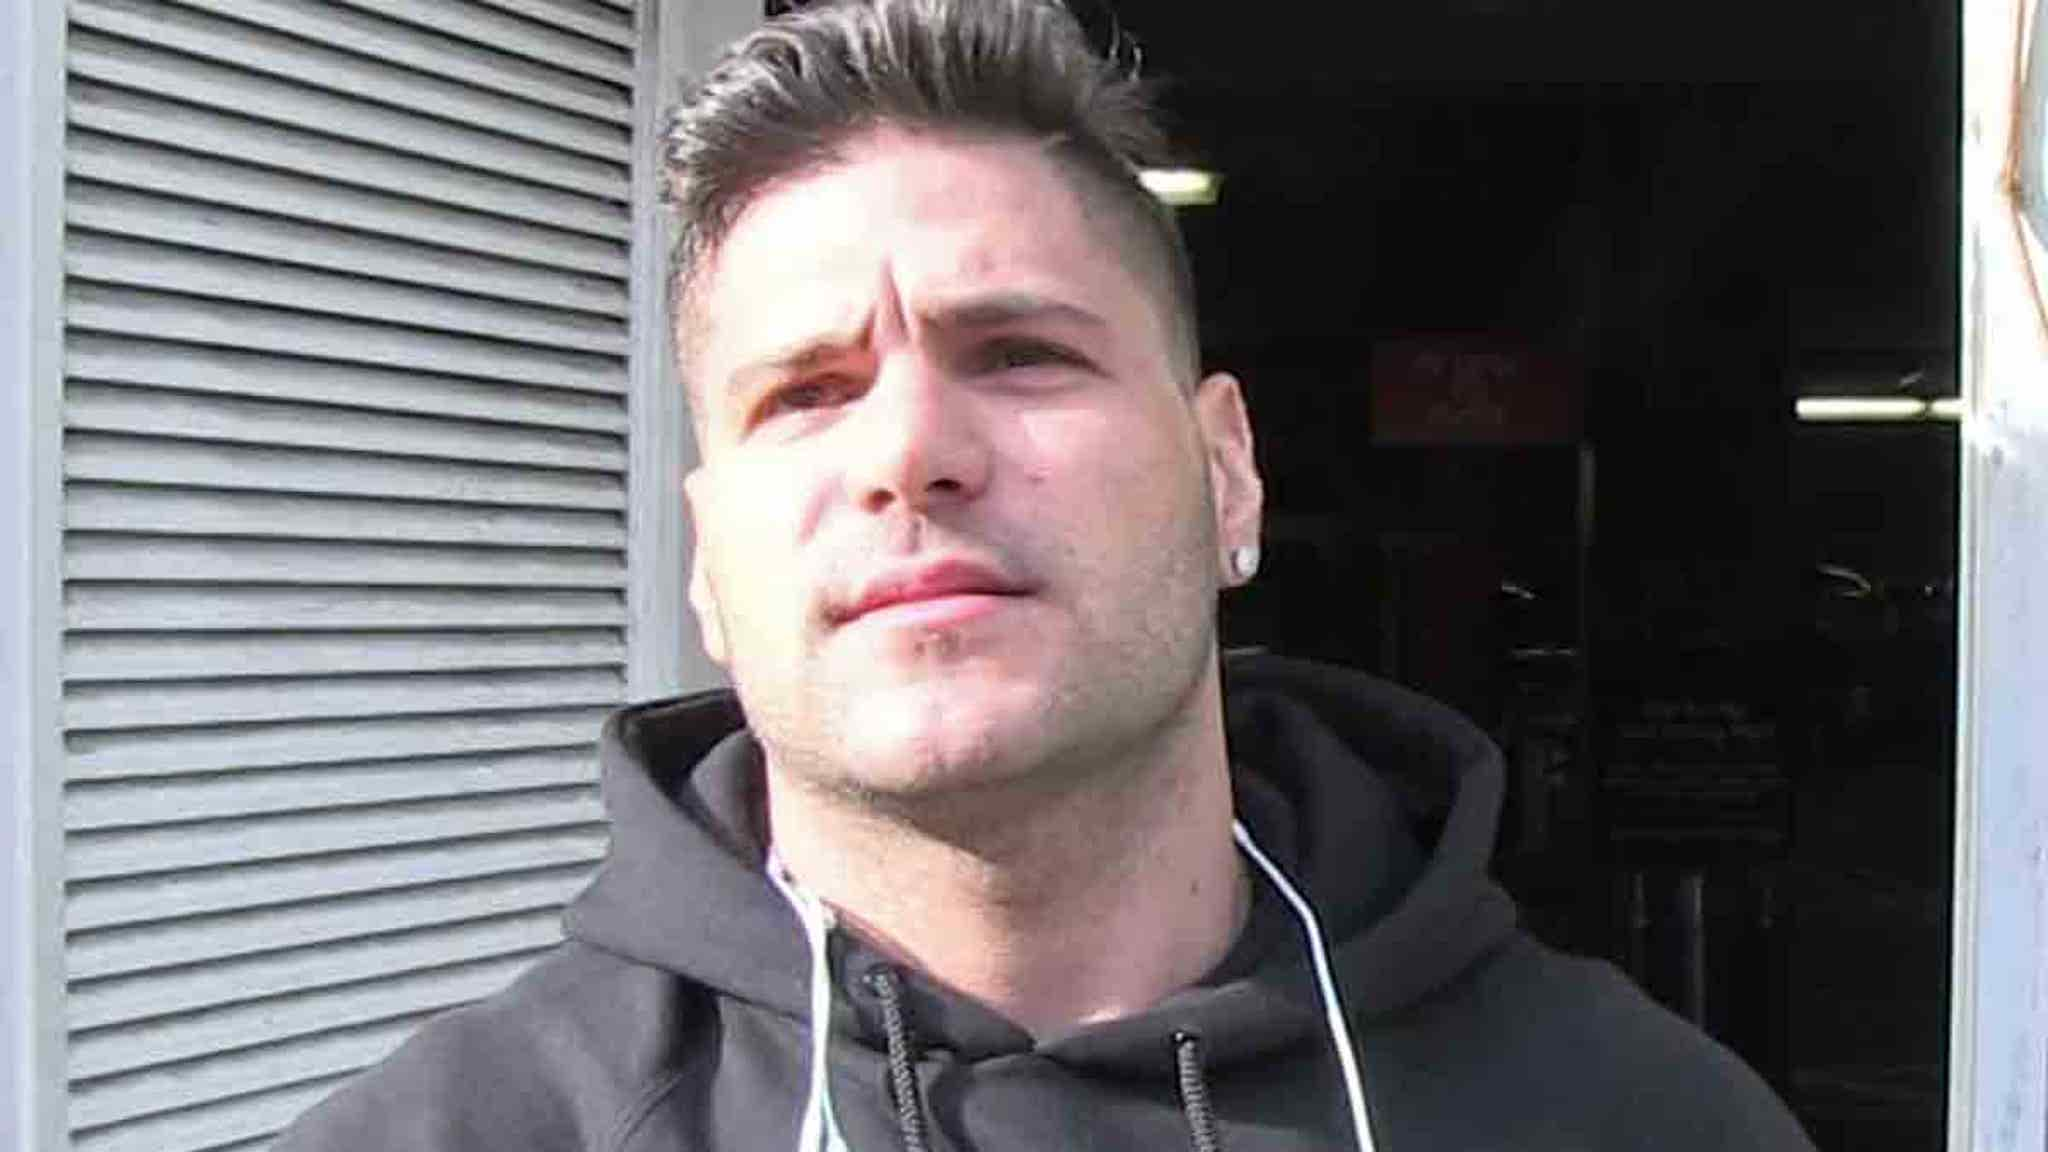 Ronnie Ortiz-Magro Will Dodge Kidnapping Charge